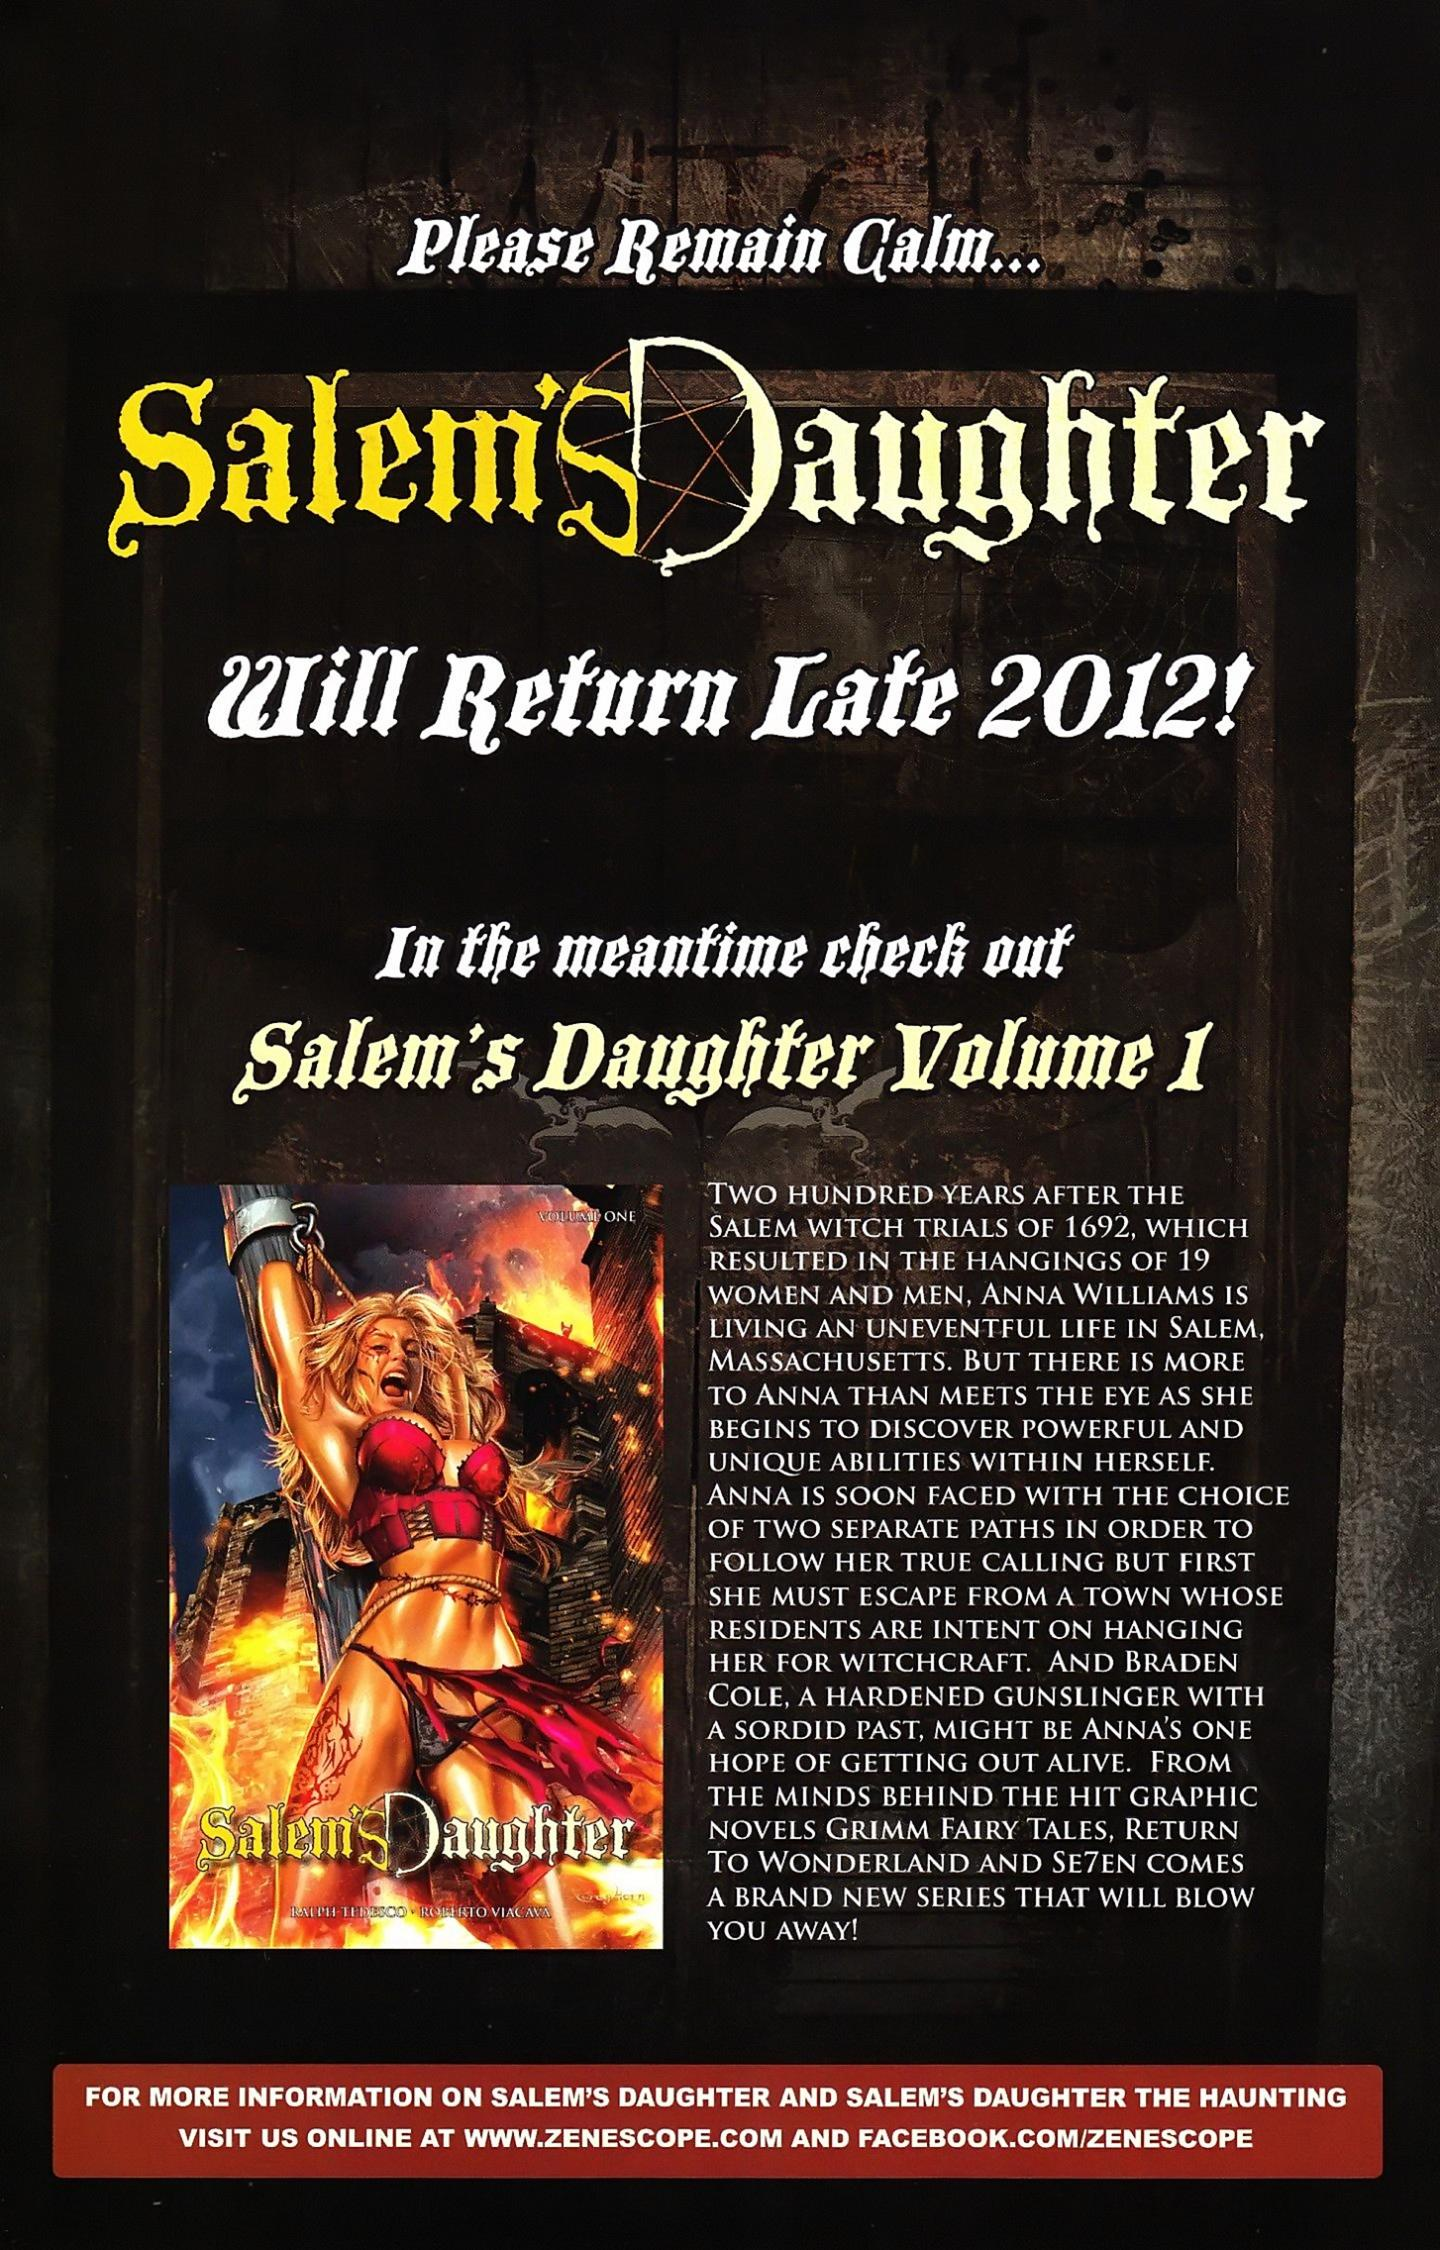 Read online Salem's Daughter: The Haunting comic -  Issue #5 - 28